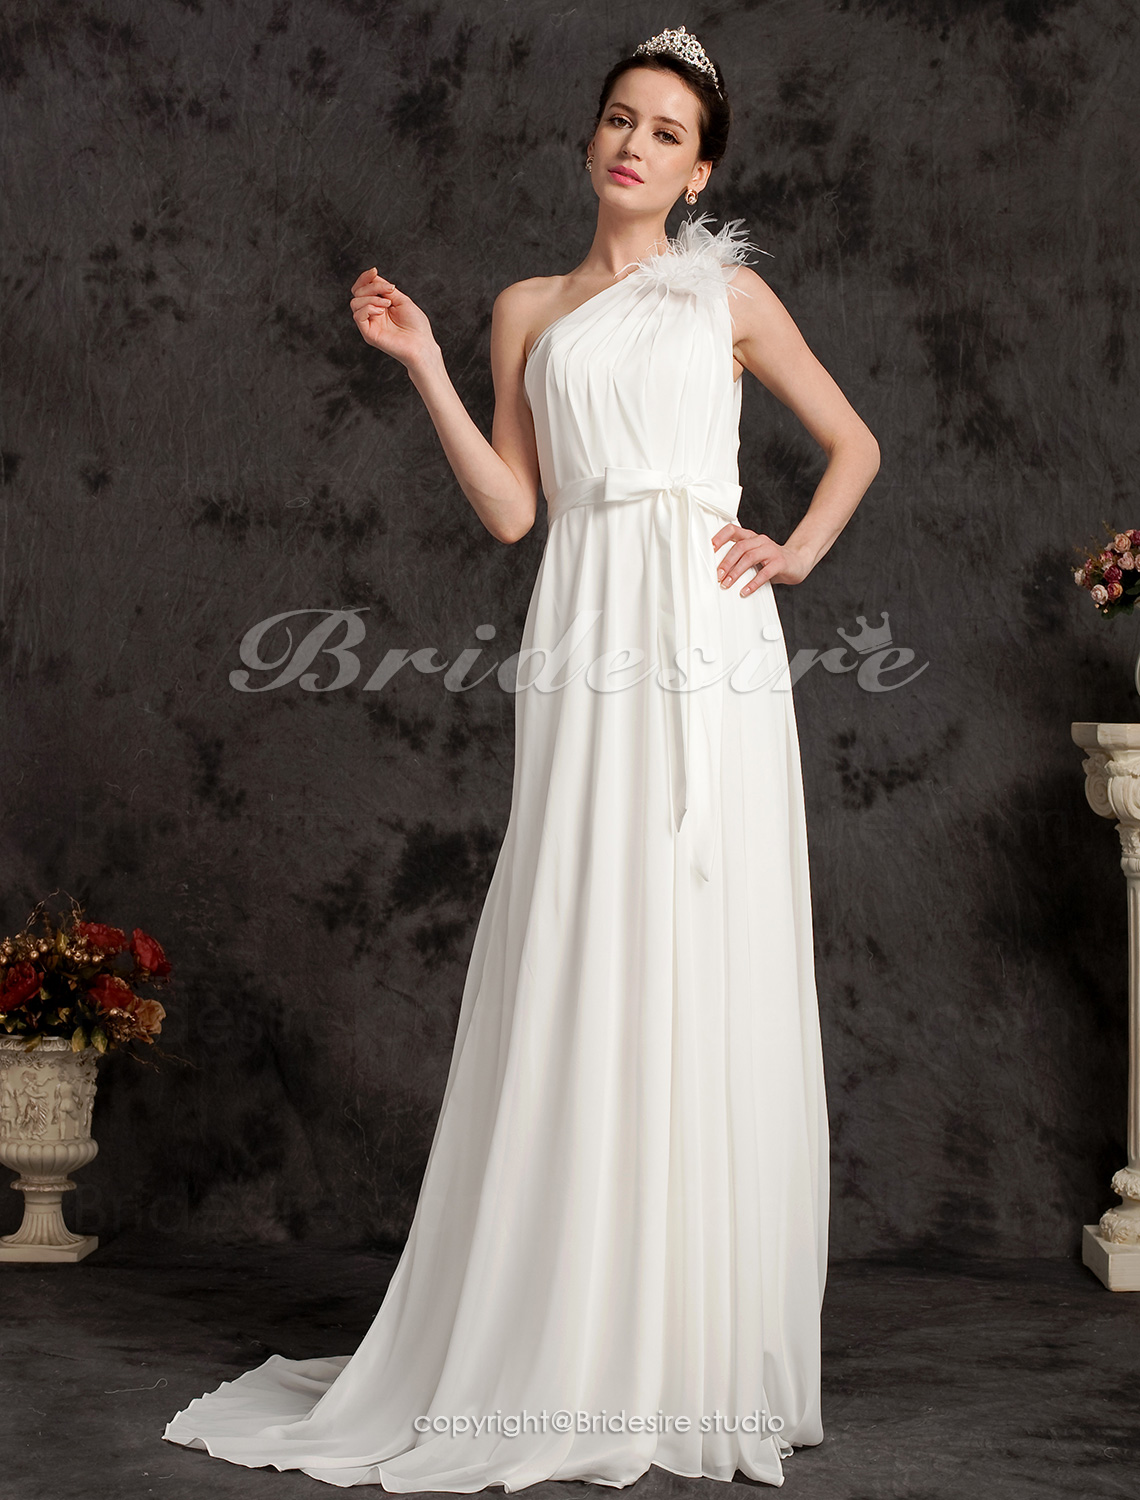 Sheath/Column Chiffon And Organza Court Train One Shoulder Wedding Dress